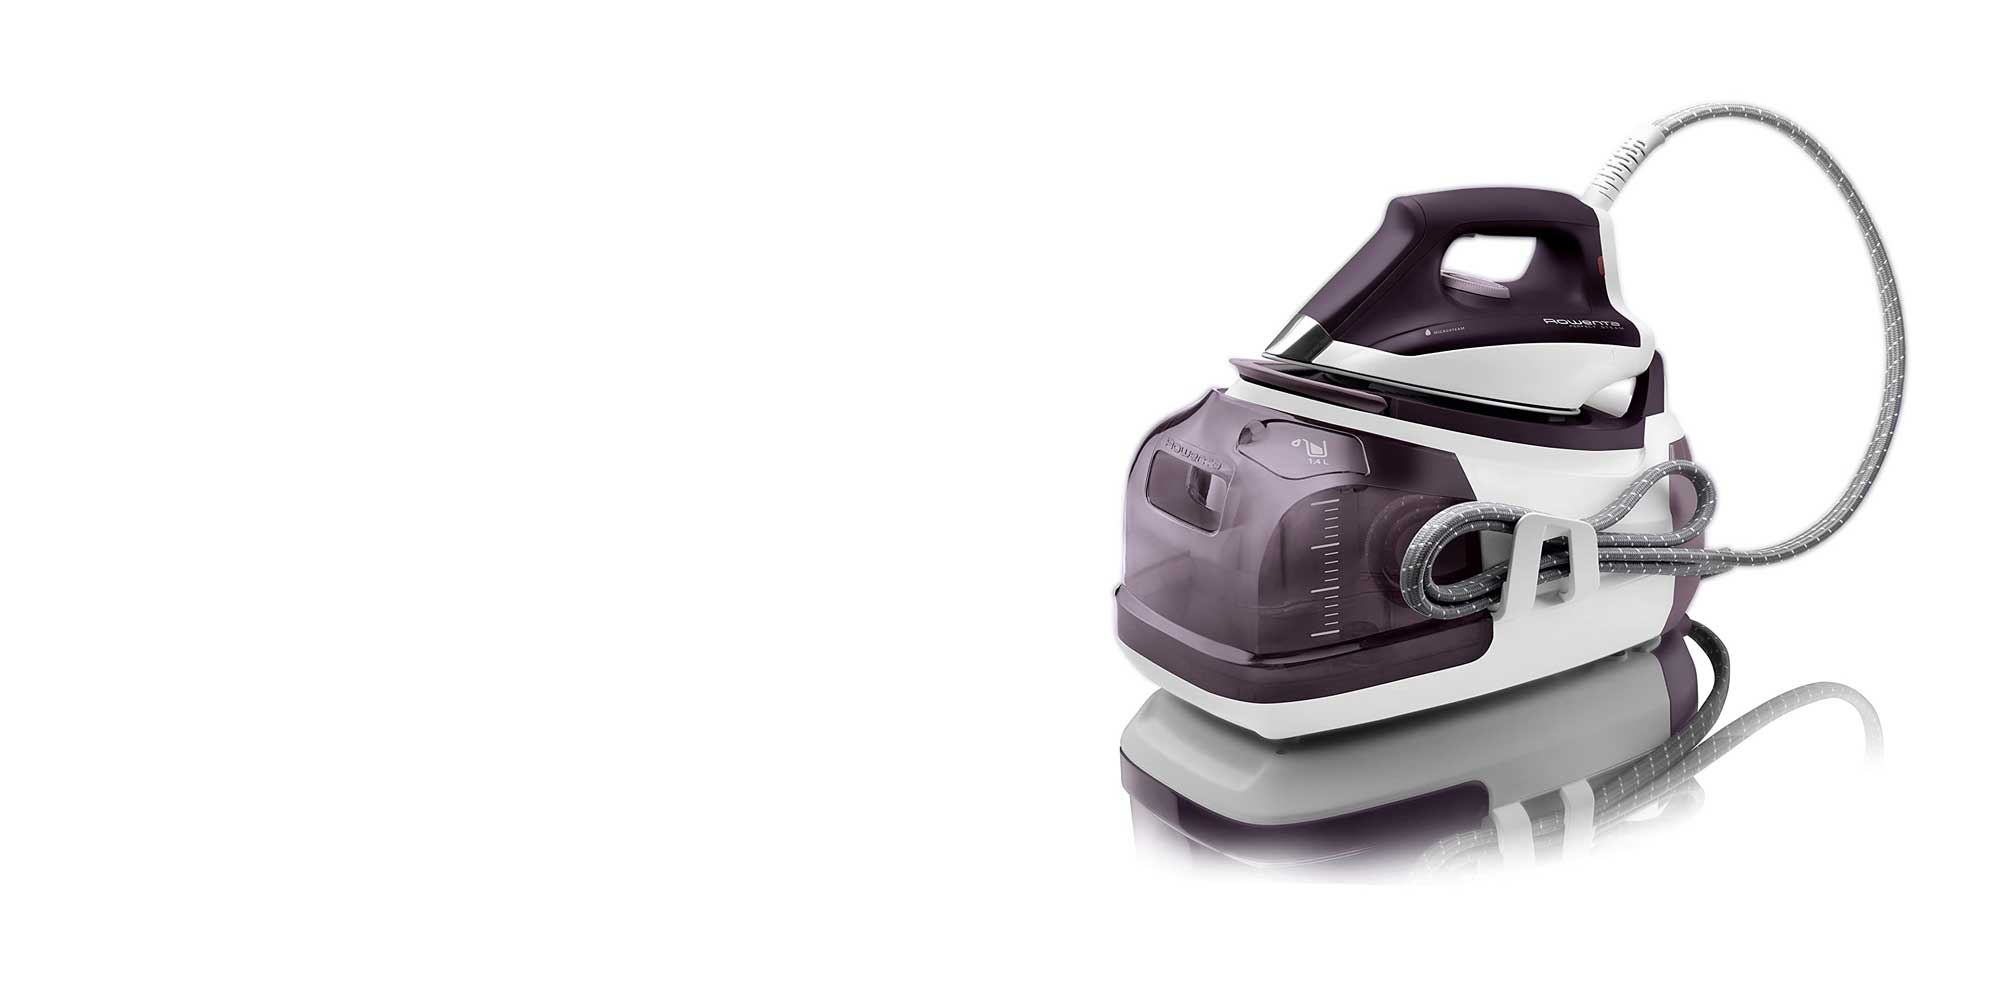 Commercial Ironing